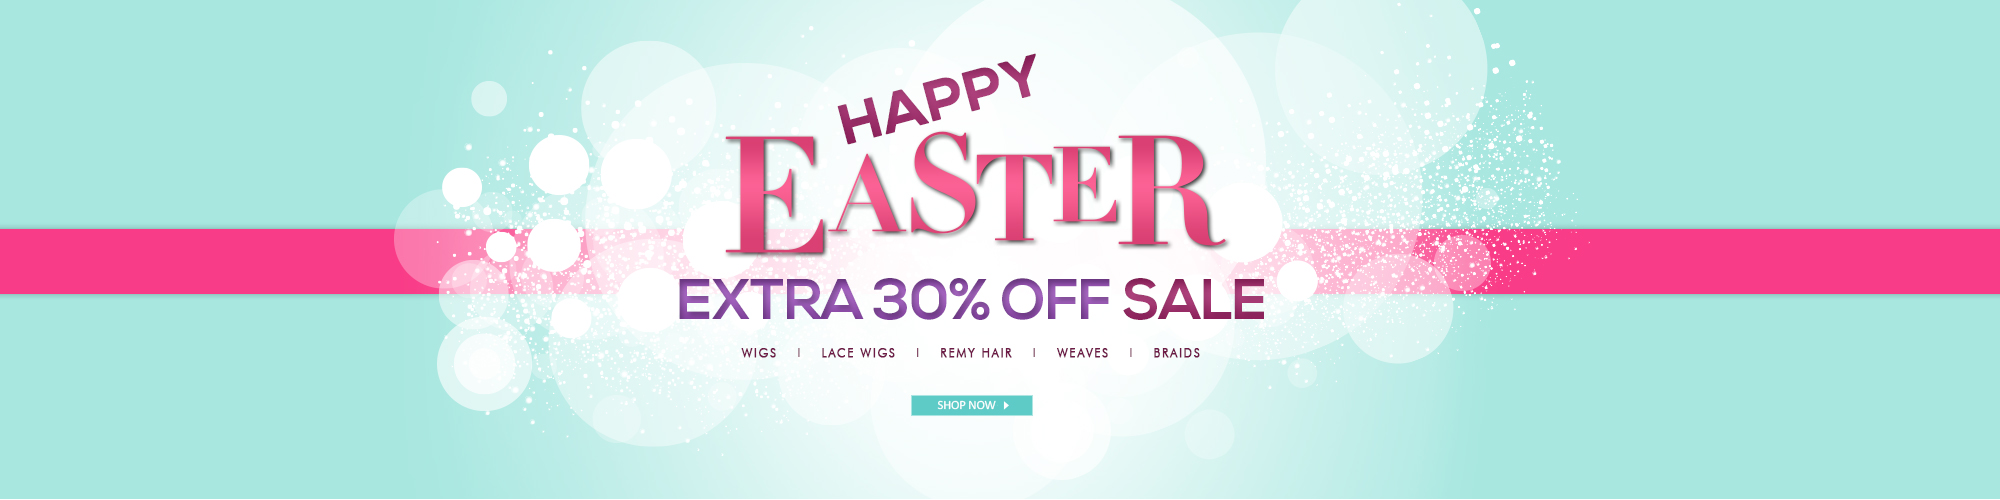 EASTER SALE - HAIR EXTRA 30% OFF!